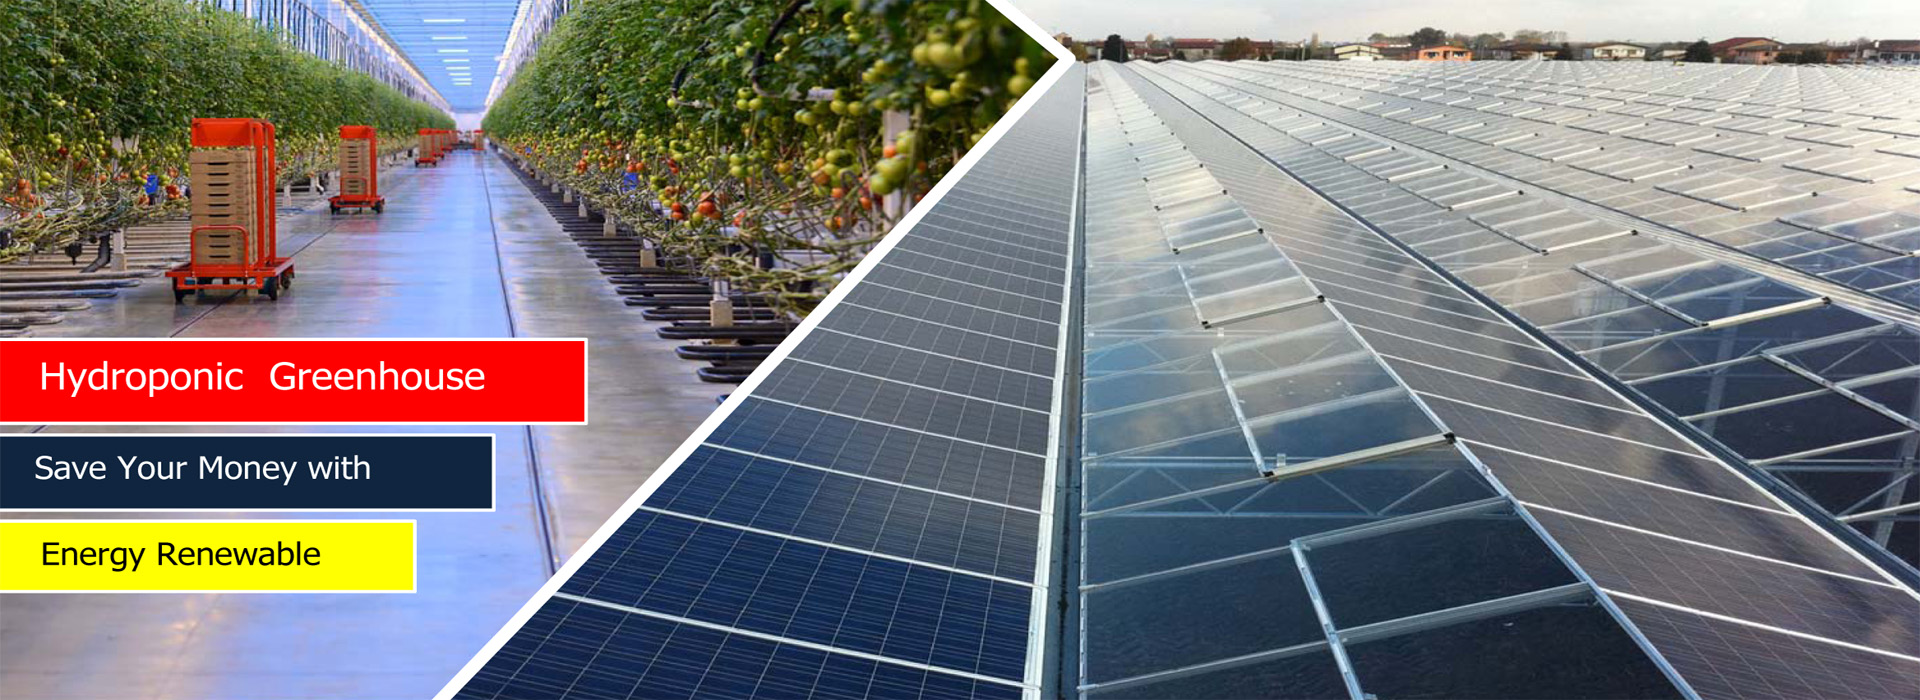 Energy Renewable Hydroponic Greenhouse  ITC Ltd